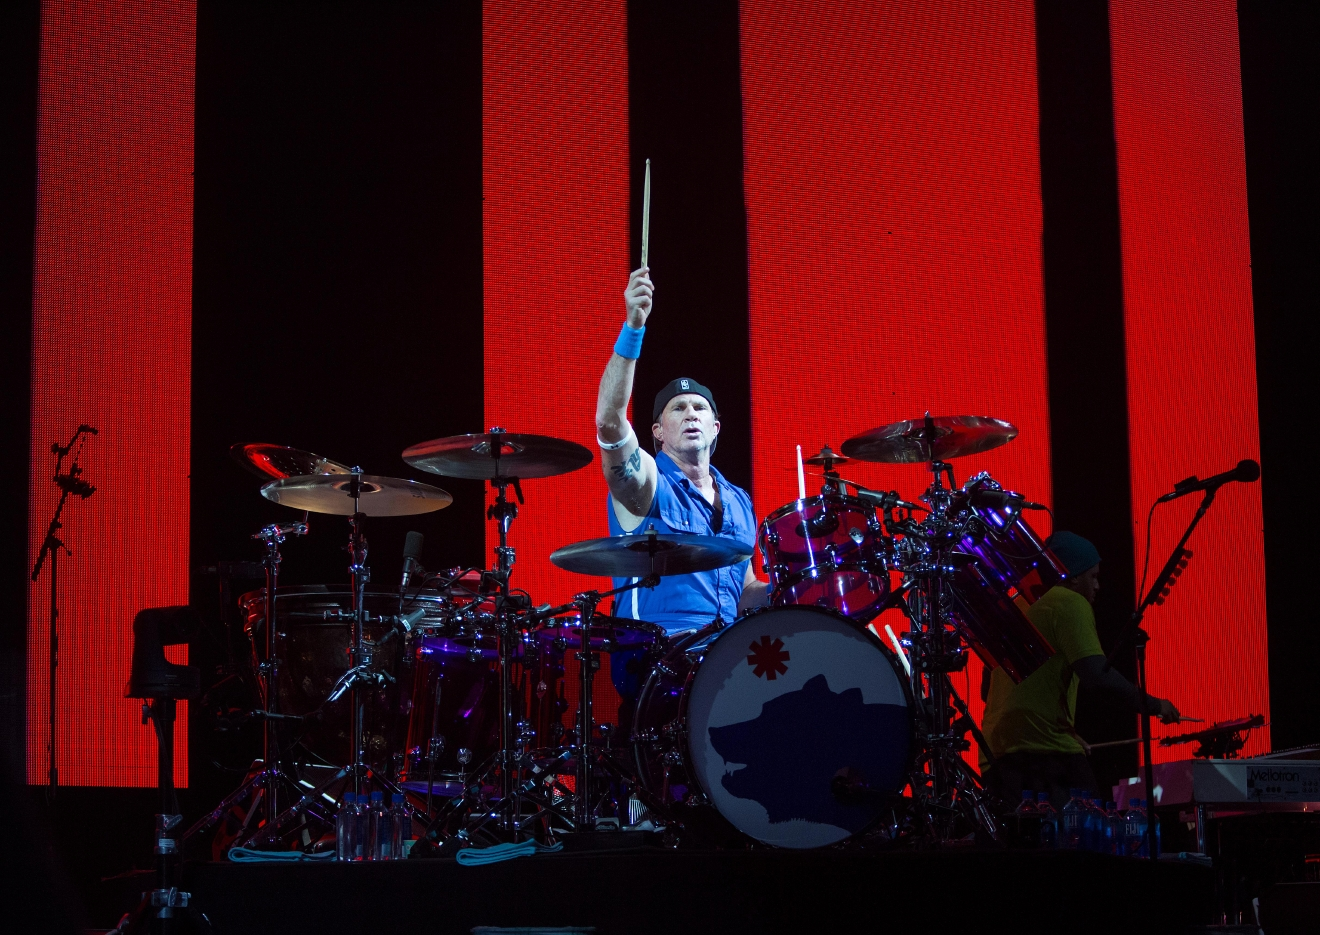 Drummer Chad smith jams out during the Red Hot Chili Peppers' performance at KeyArena.(Sy Bean / Seattle Refined)